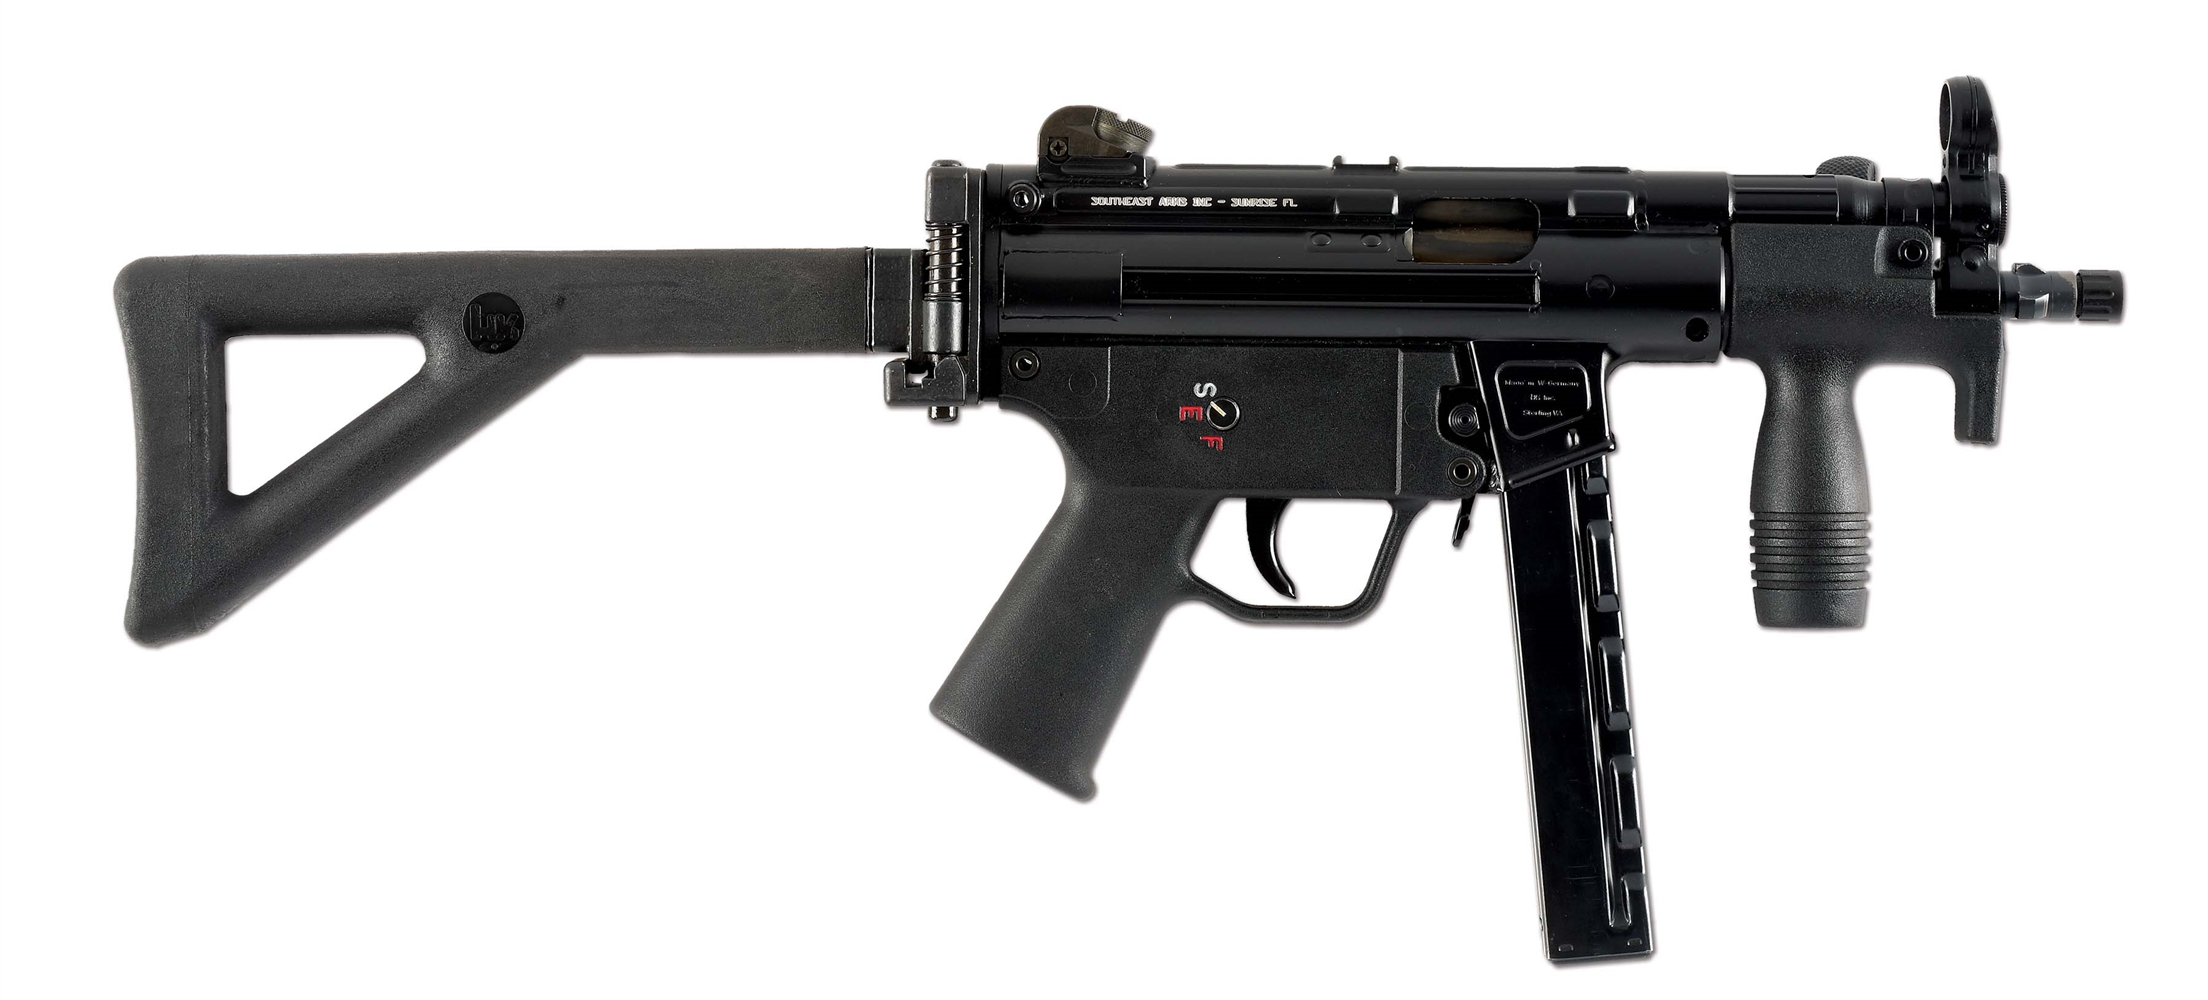 (N) SOUTHEAST ARMS RDTS CONVERTED HECKLER & KOCH MP5K-N SEMI-AUTOMATIC SHORT BARRELED RIFLE (SHORT BARRELED RIFLE).